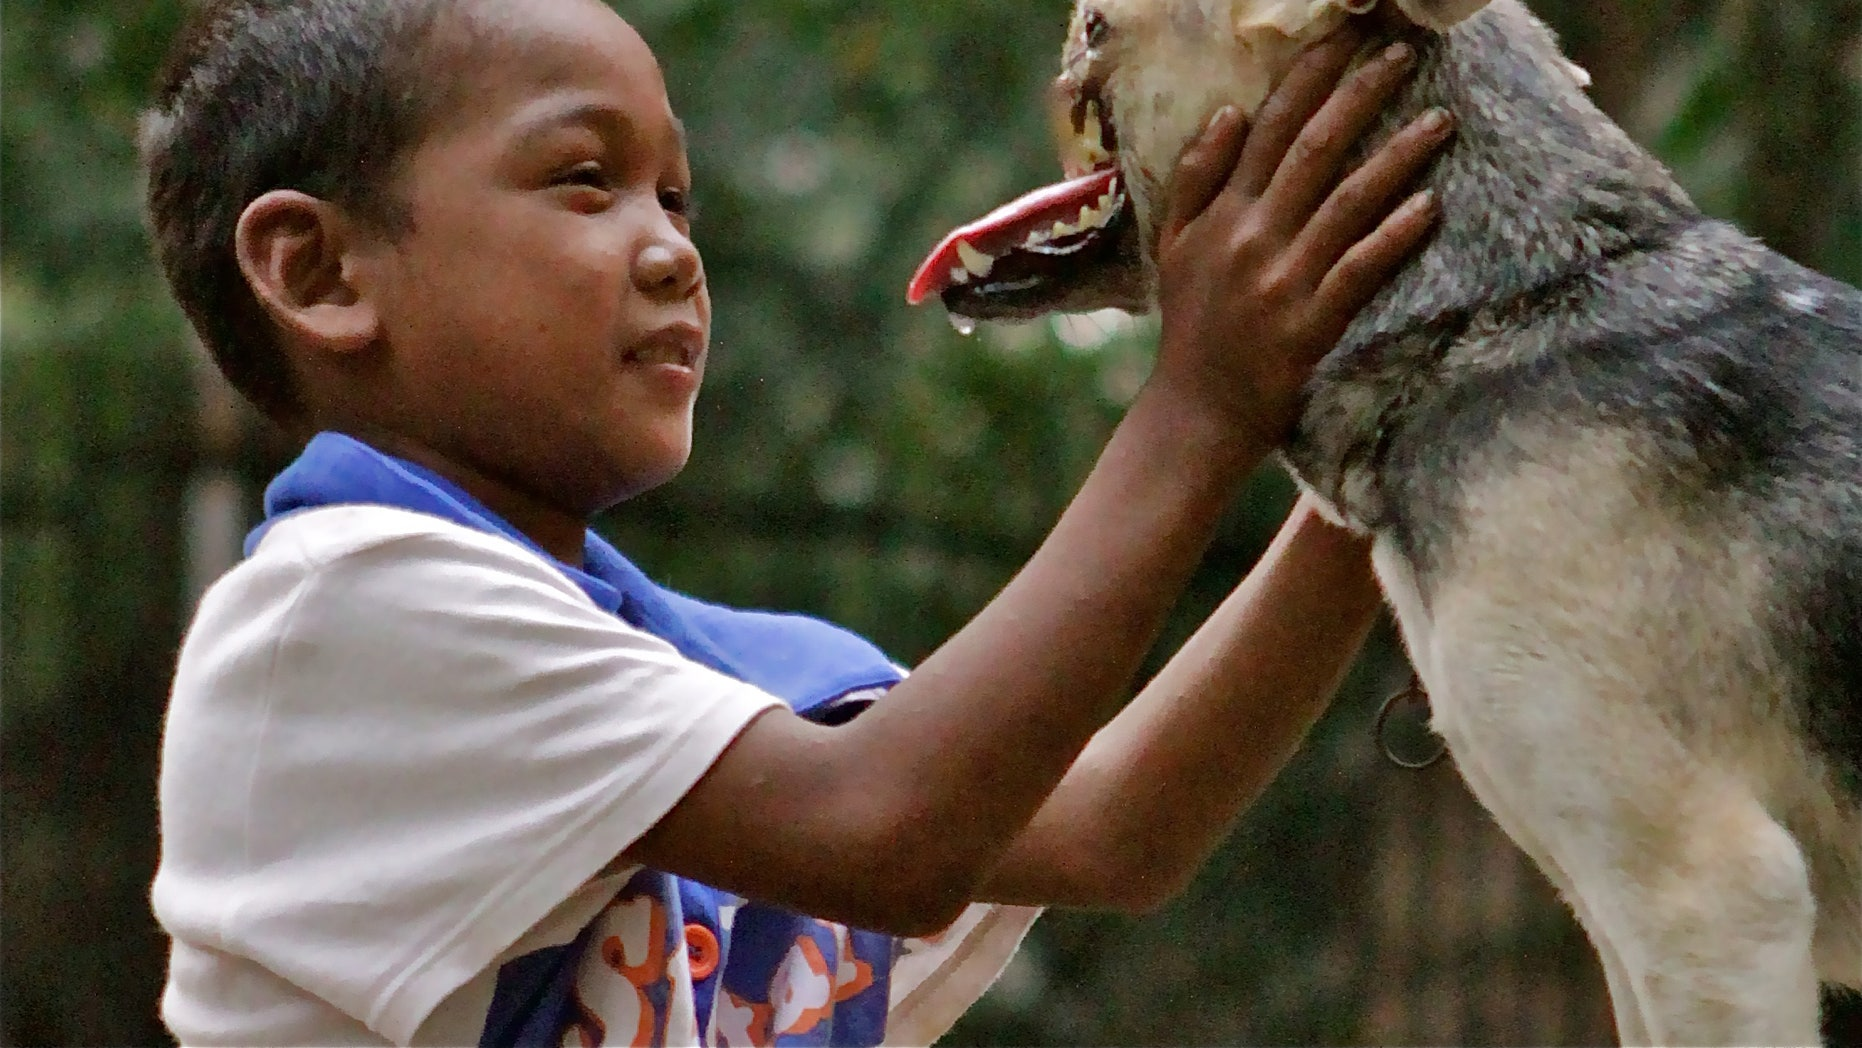 Aug. 12, 2012: In this photo provided by the University of California - Davis, a Bunggal family member plays with Kabang the dog in the Philippines.